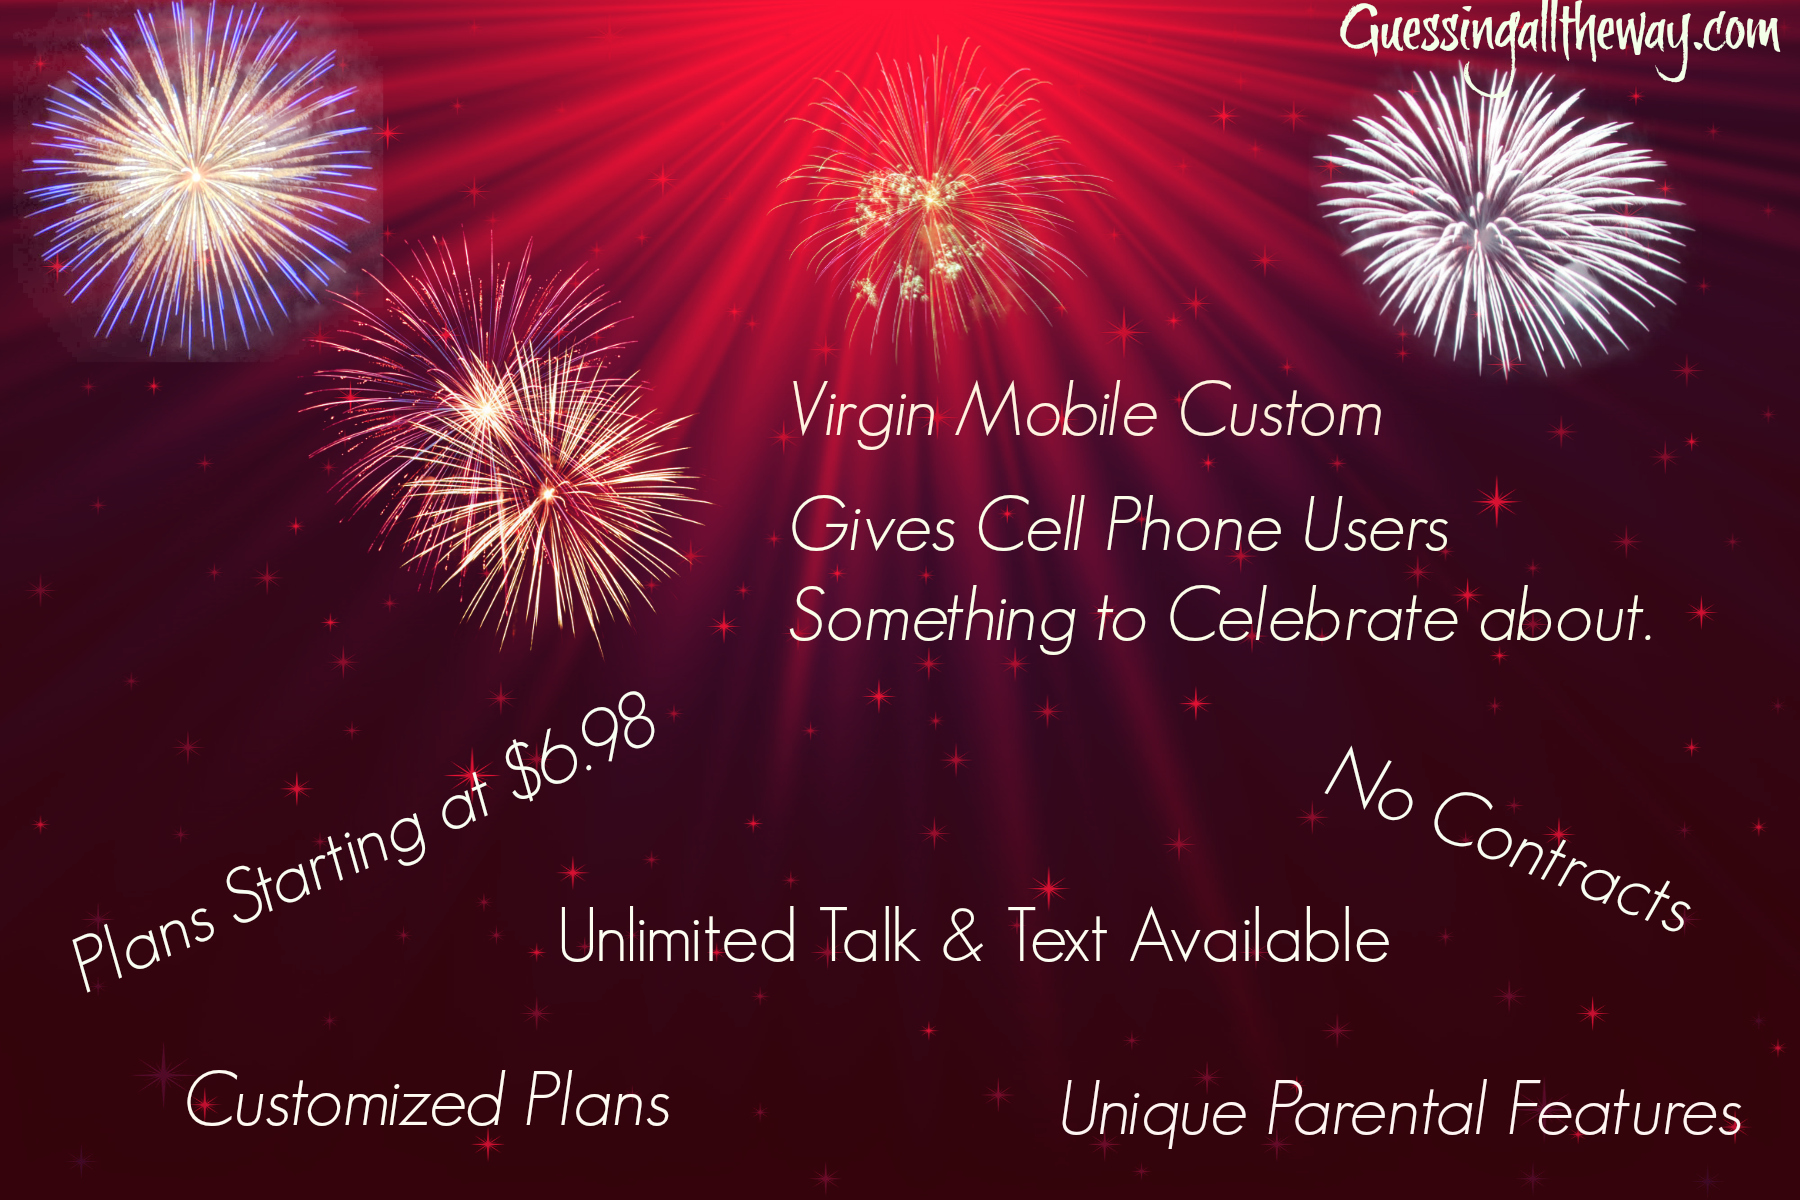 Virgin Mobile Custom: Affordable Phone Plans & Perfect for Kids